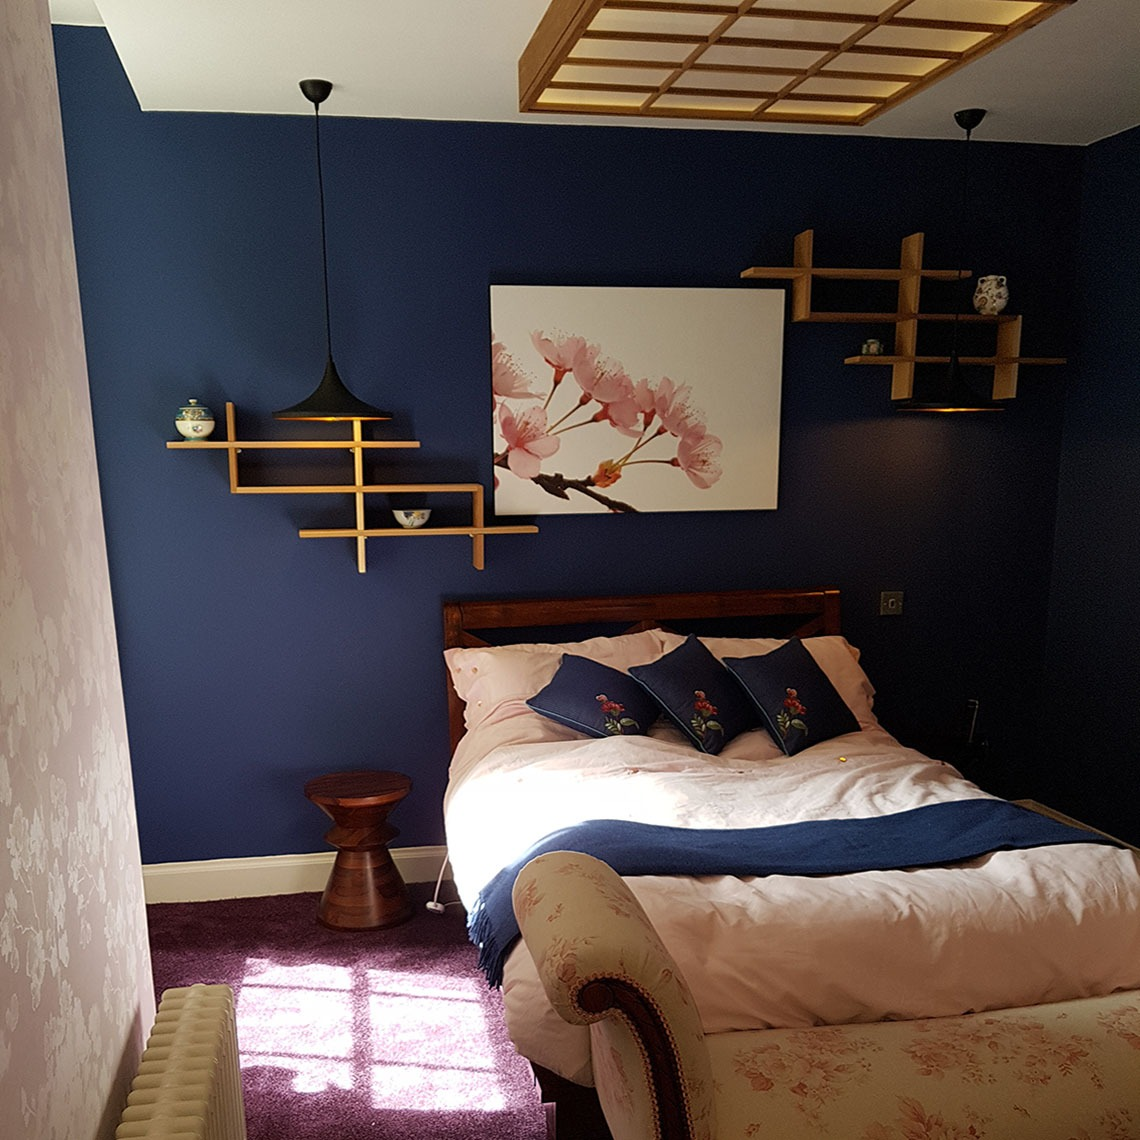 blue wall with pink flower artwork, tom dixon pendants and soji ceiling light